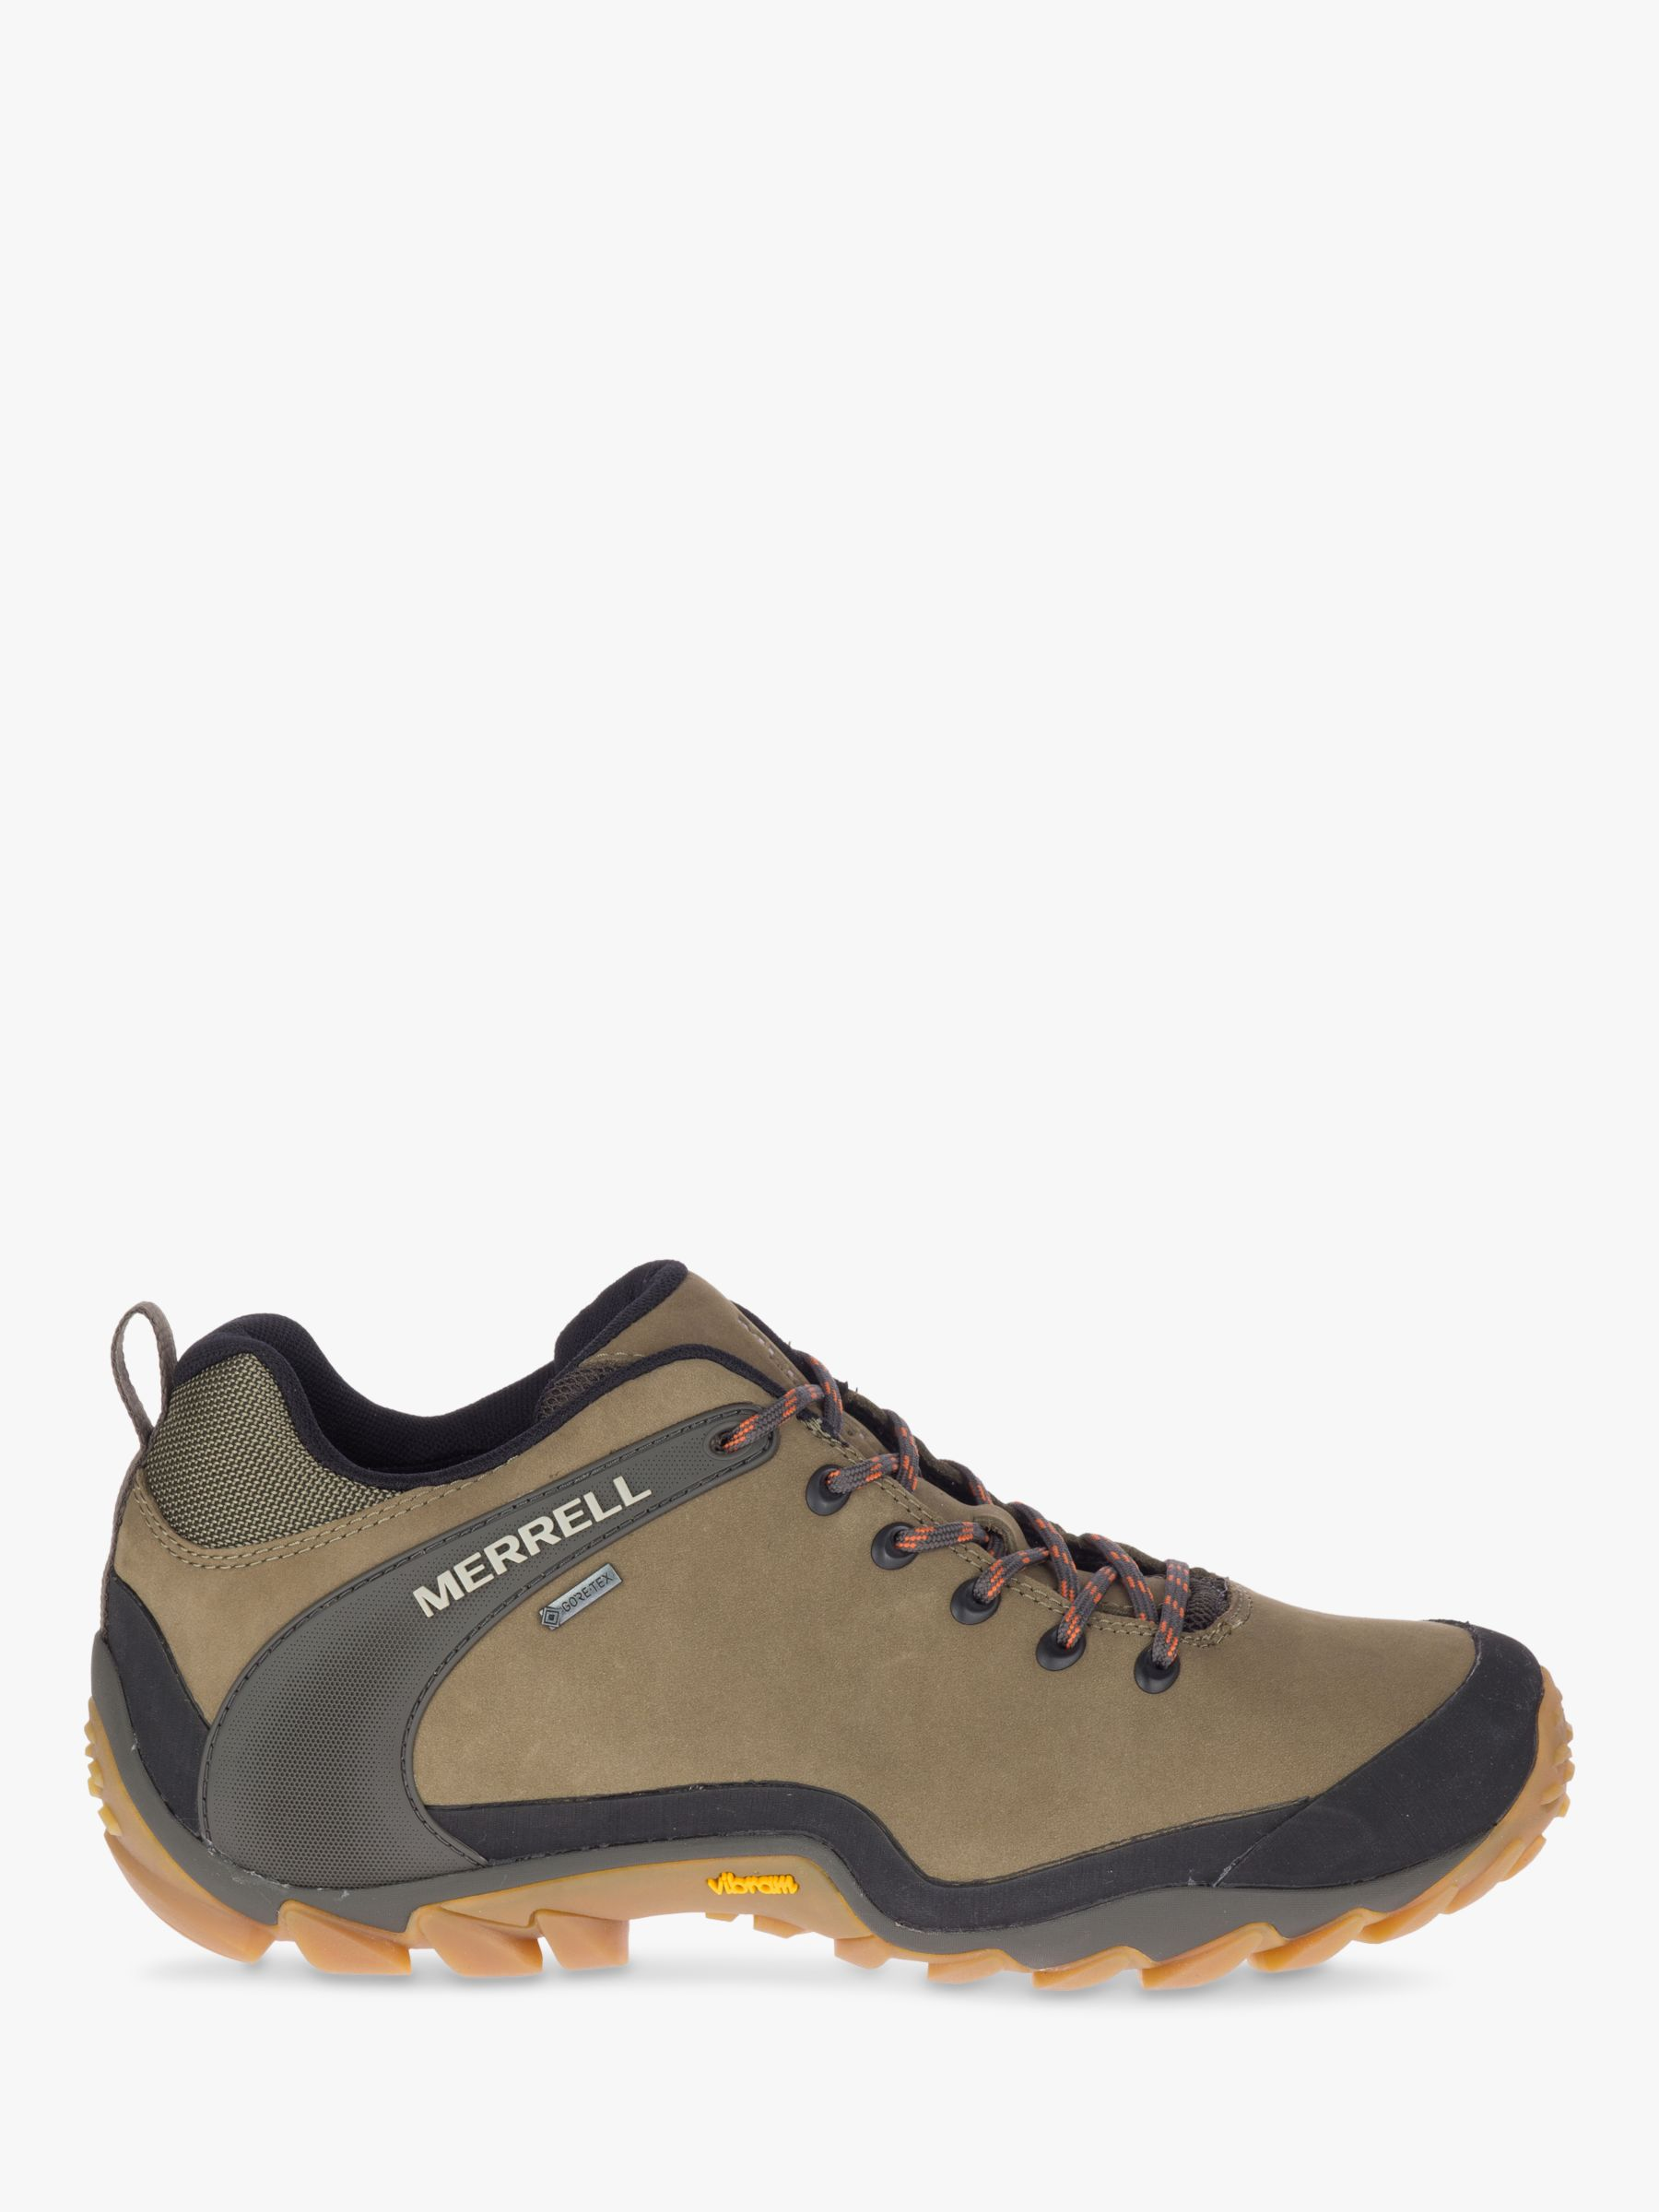 Merrell Merrell Chameleon 8 Men's Waterproof Gore-Tex Walking Shoes, Olive